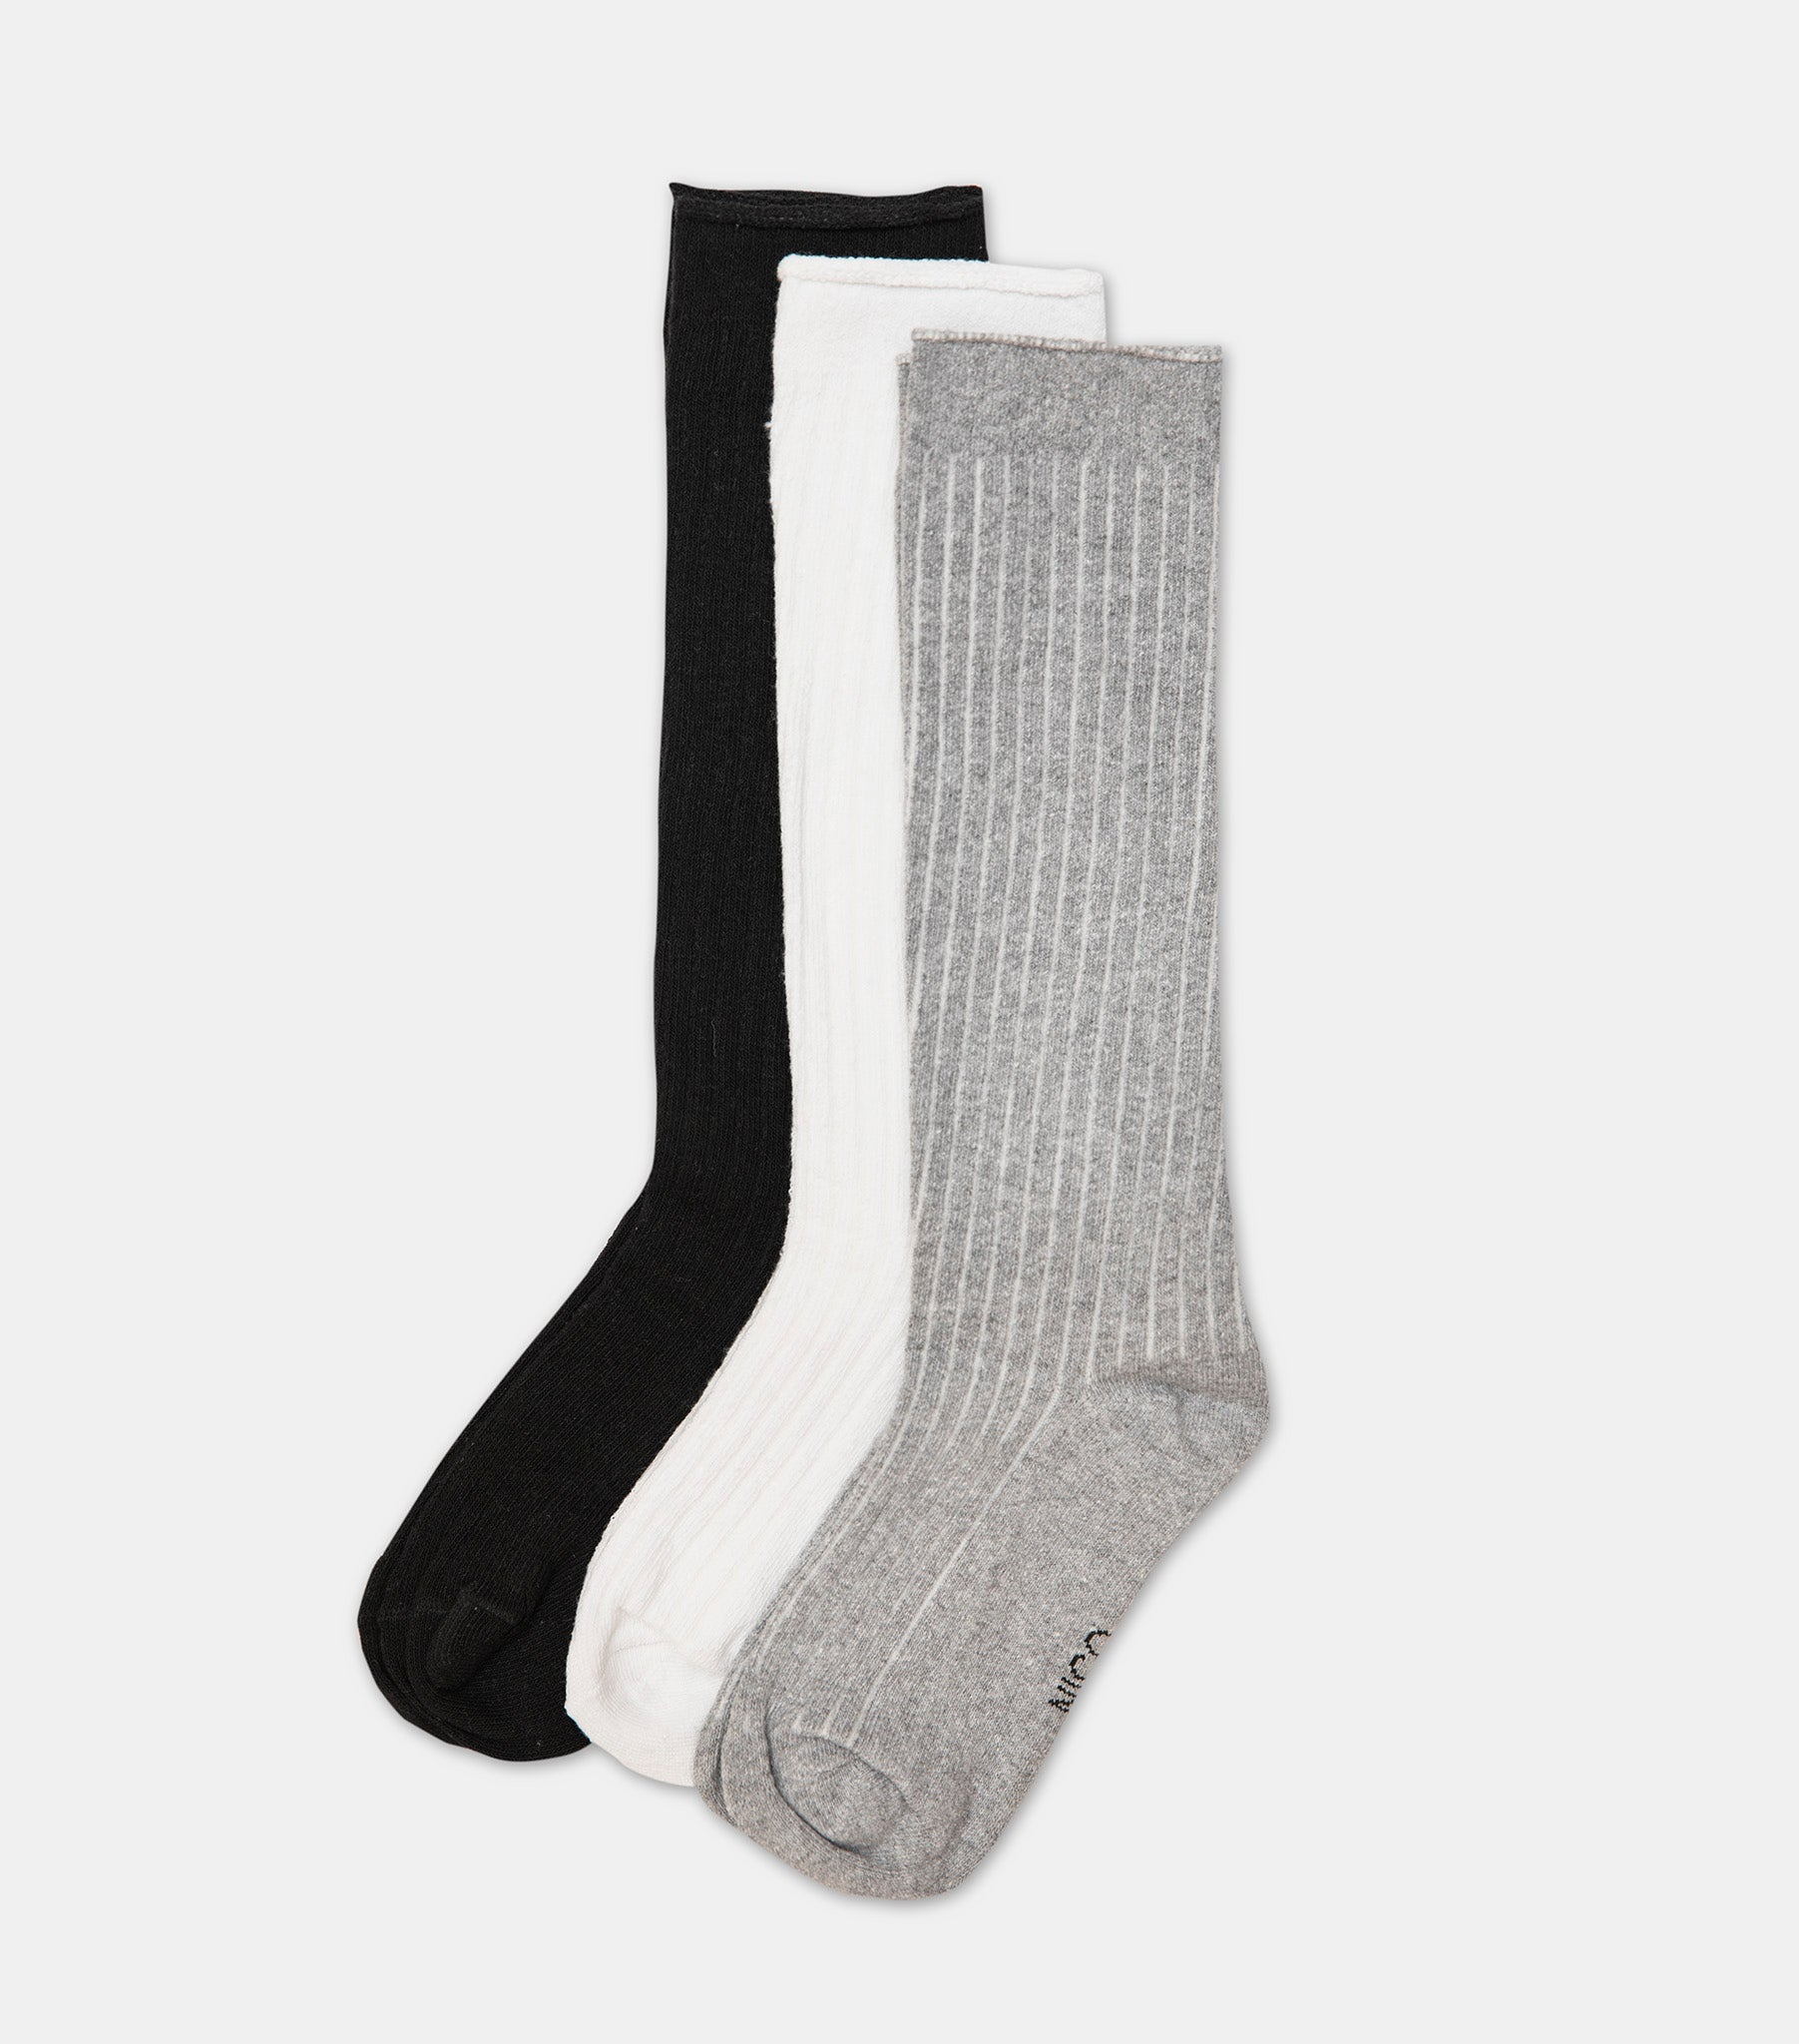 c3741ea23bf Recycled Cotton Long Socks - Mixed 3 Pack - NICO